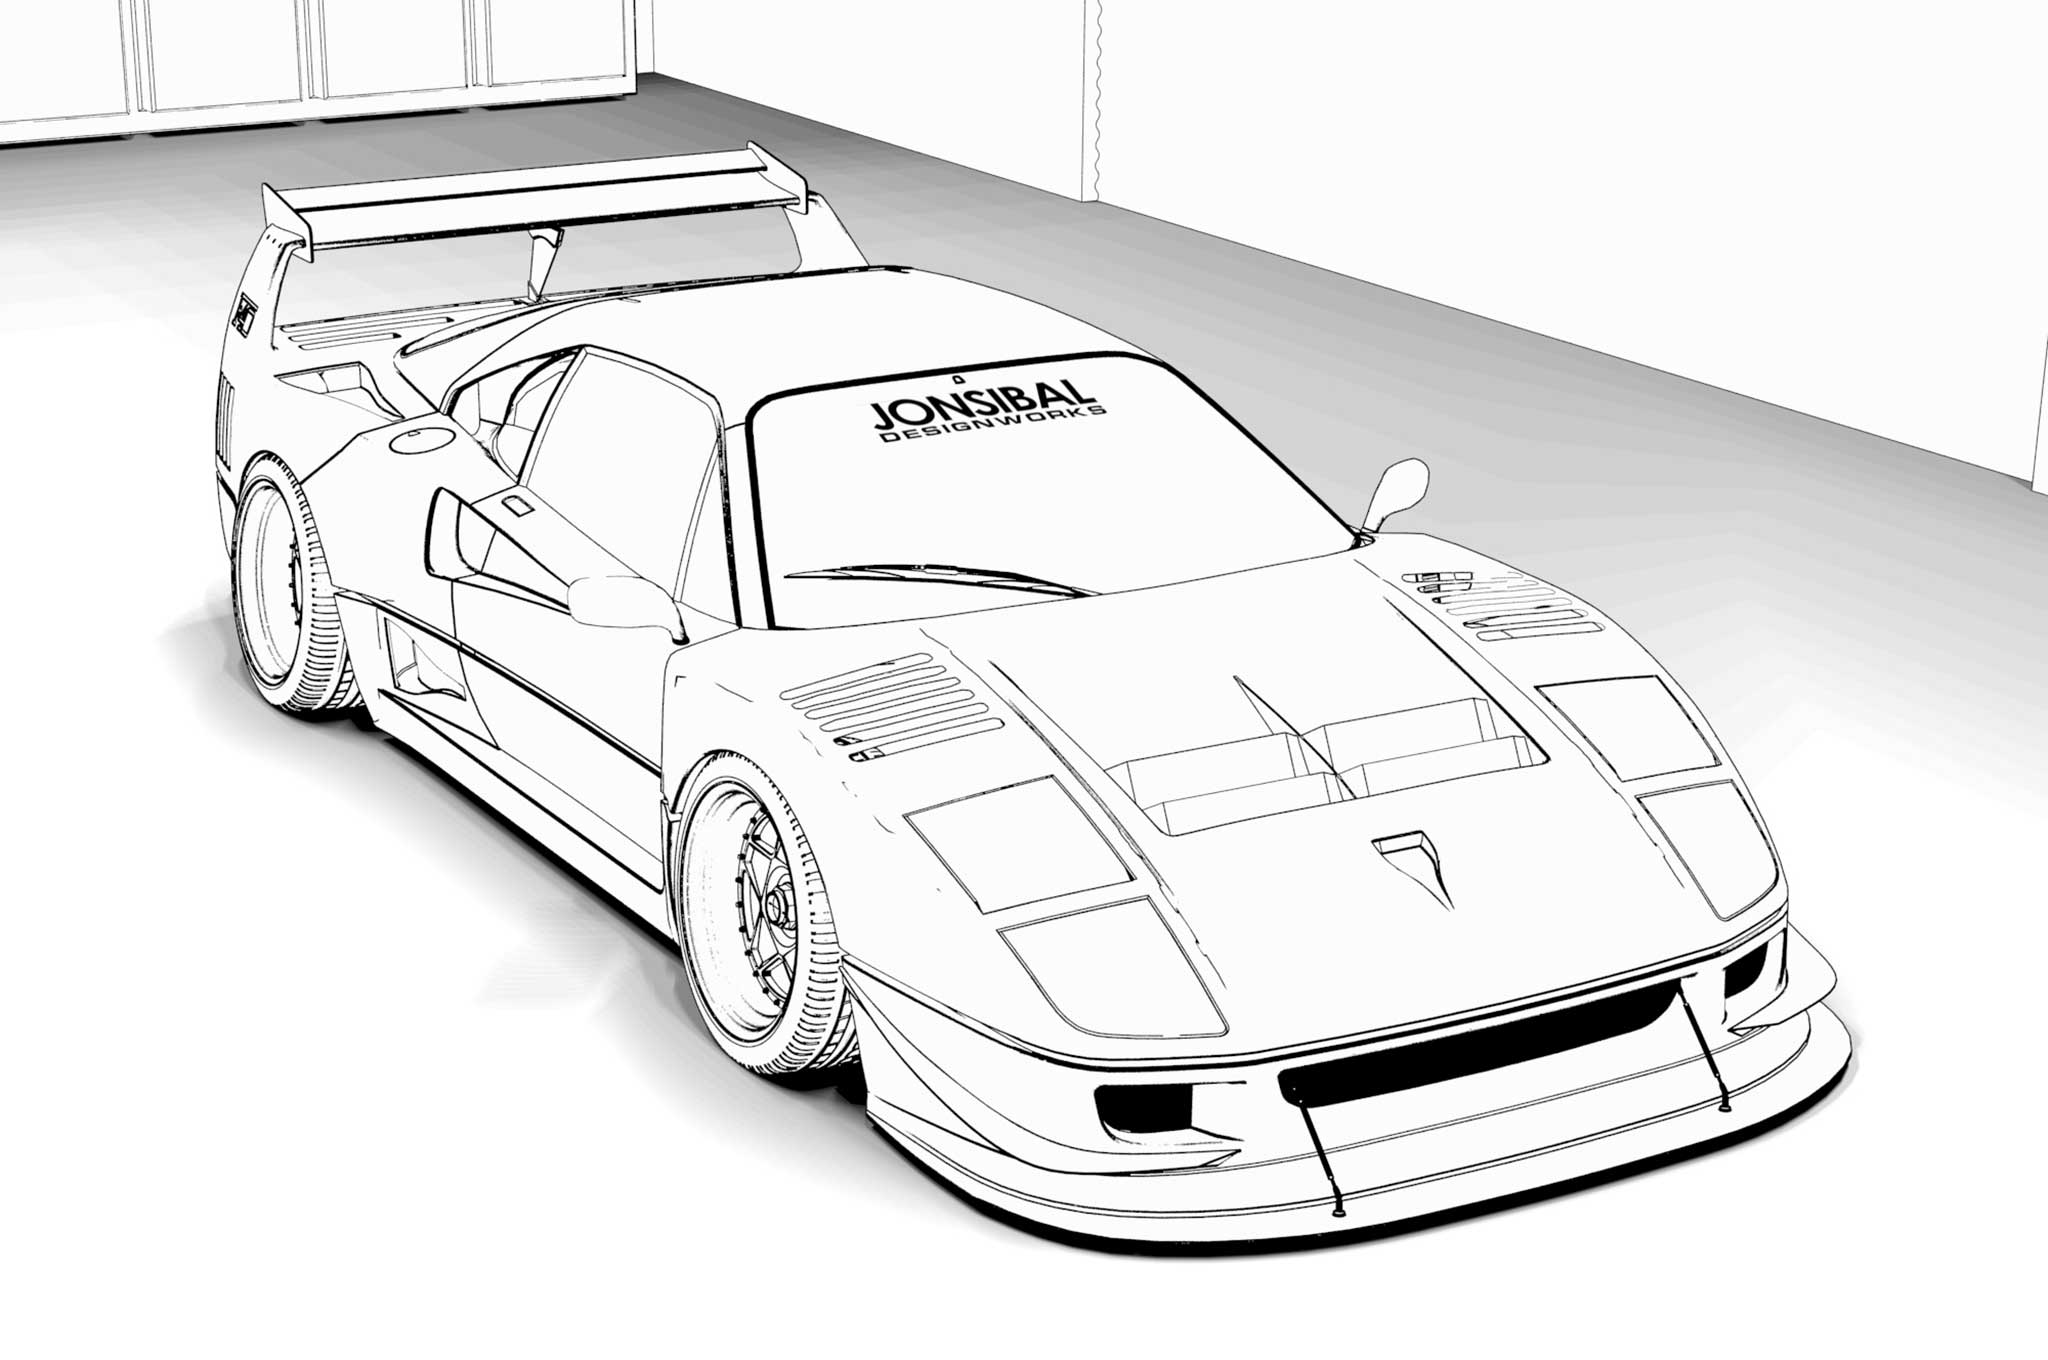 coloring pages of ferrari ferrari car coloring pages at getdrawings free download ferrari coloring of pages